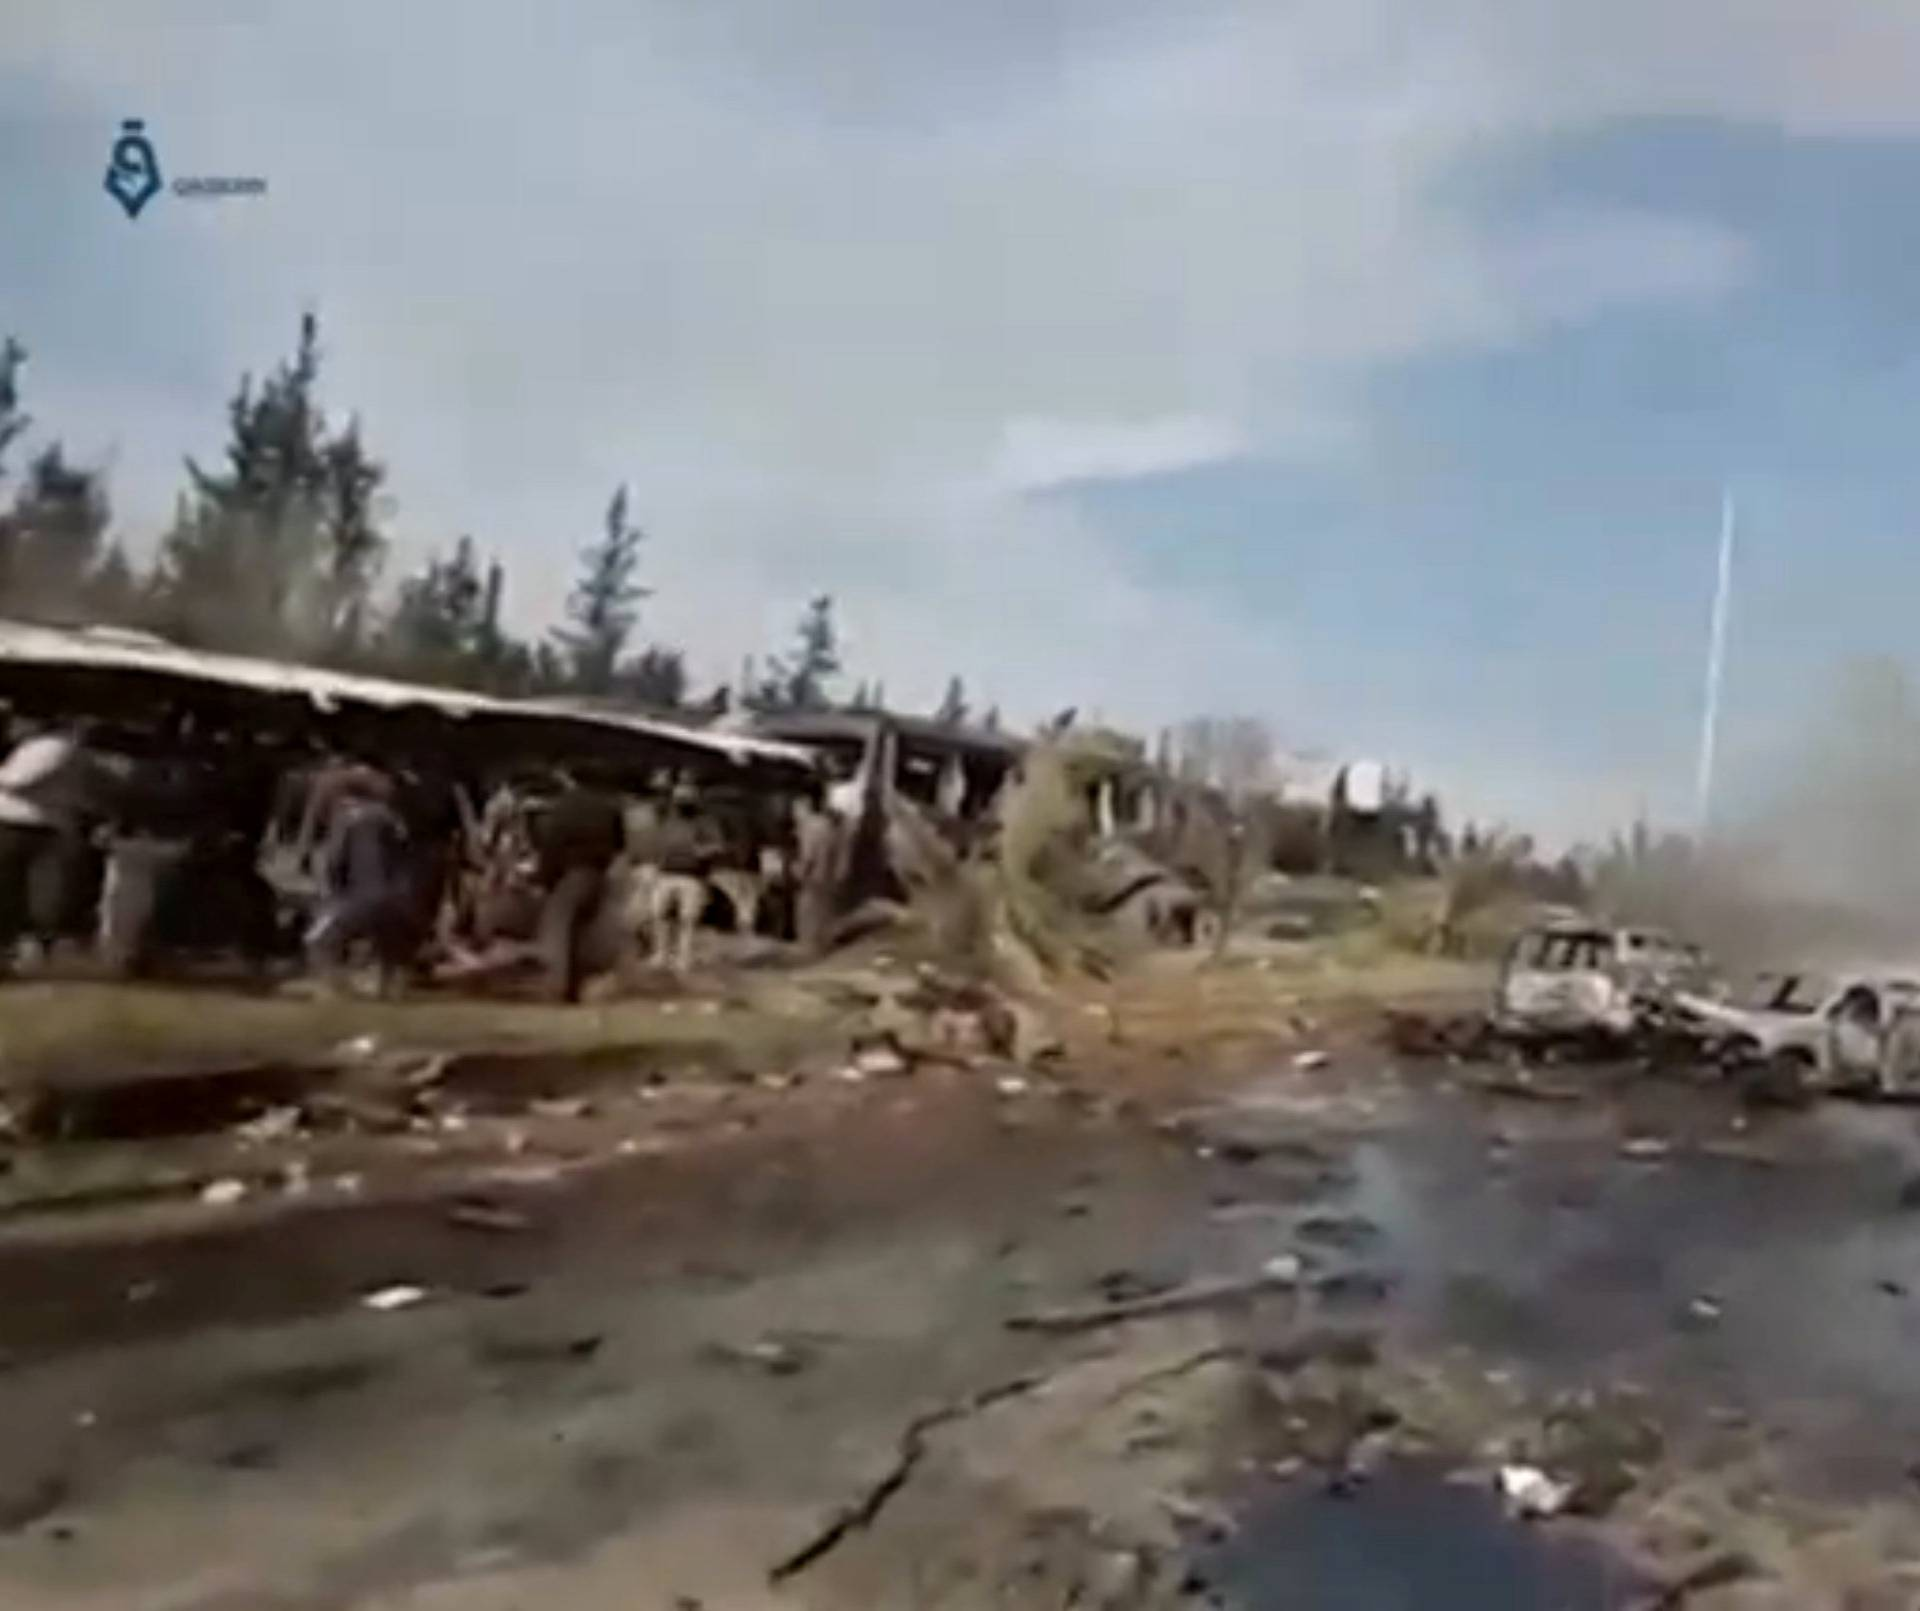 A still image taken from a video uploaded on social media on April 15, 2017, shows burnt out buses on road, scattered debris lying nearby and injured people being tended to away from buses said to be in Aleppo